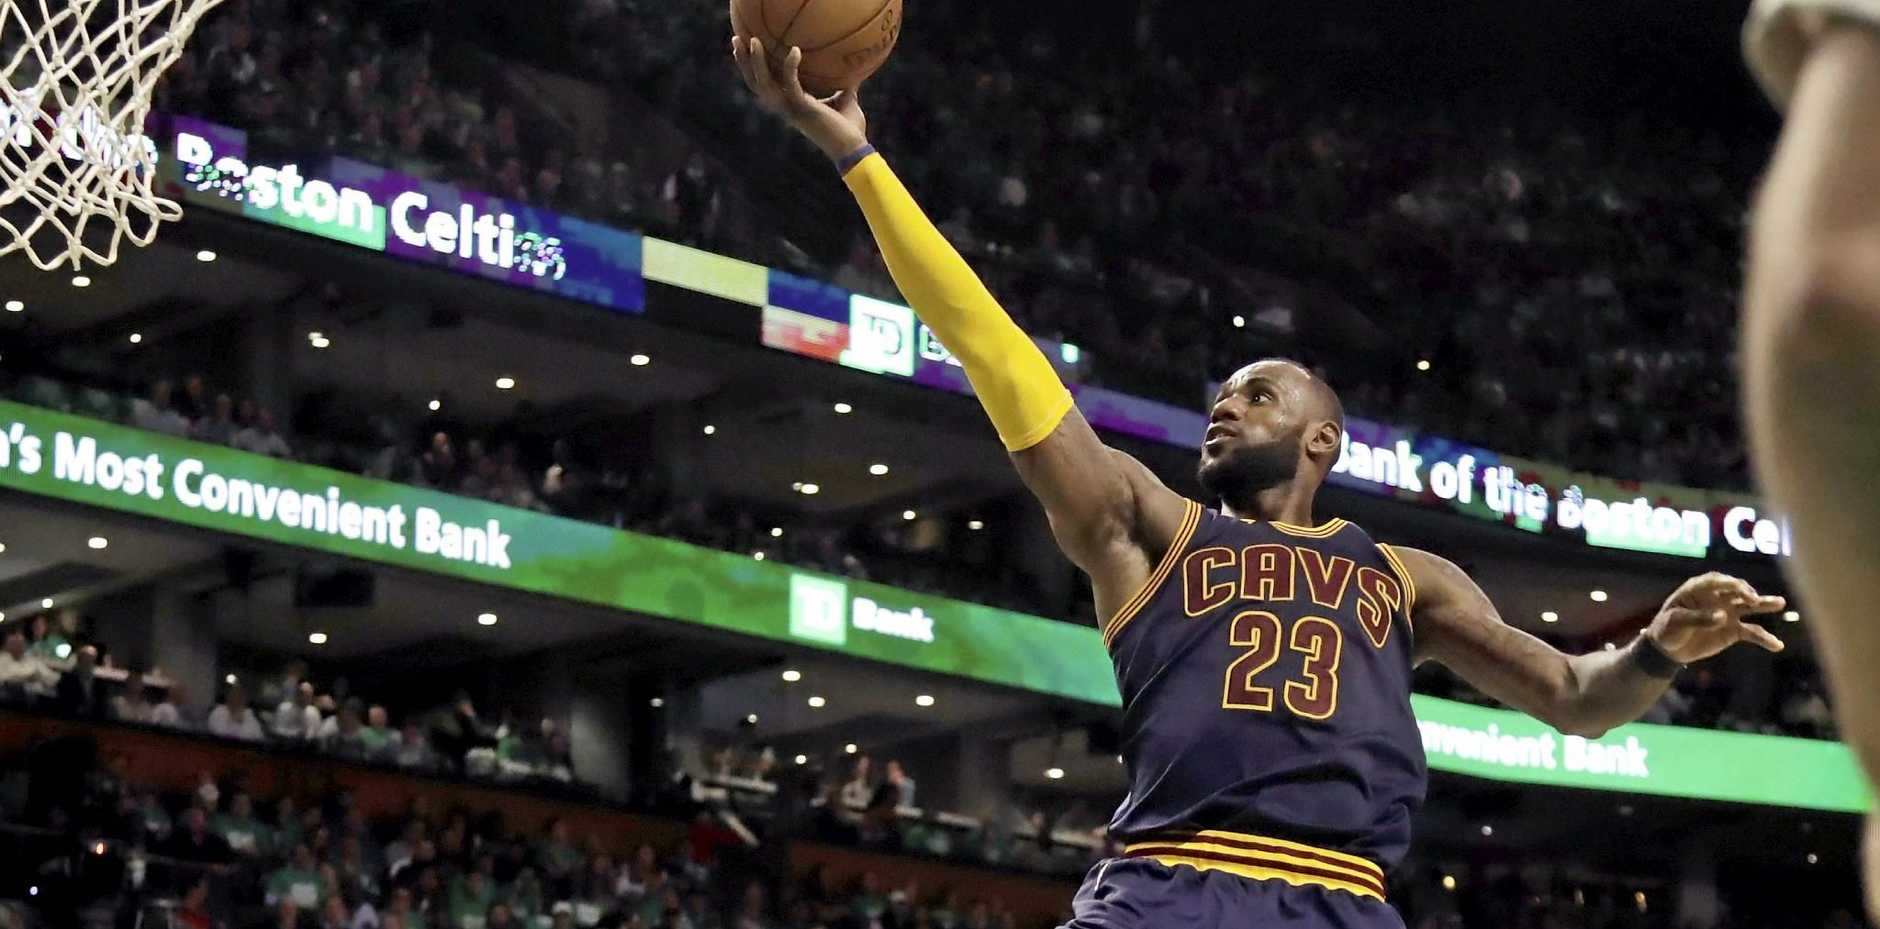 OUTDOING JORDAN: Cleveland Cavaliers forward LeBron James (23) soars to the basket